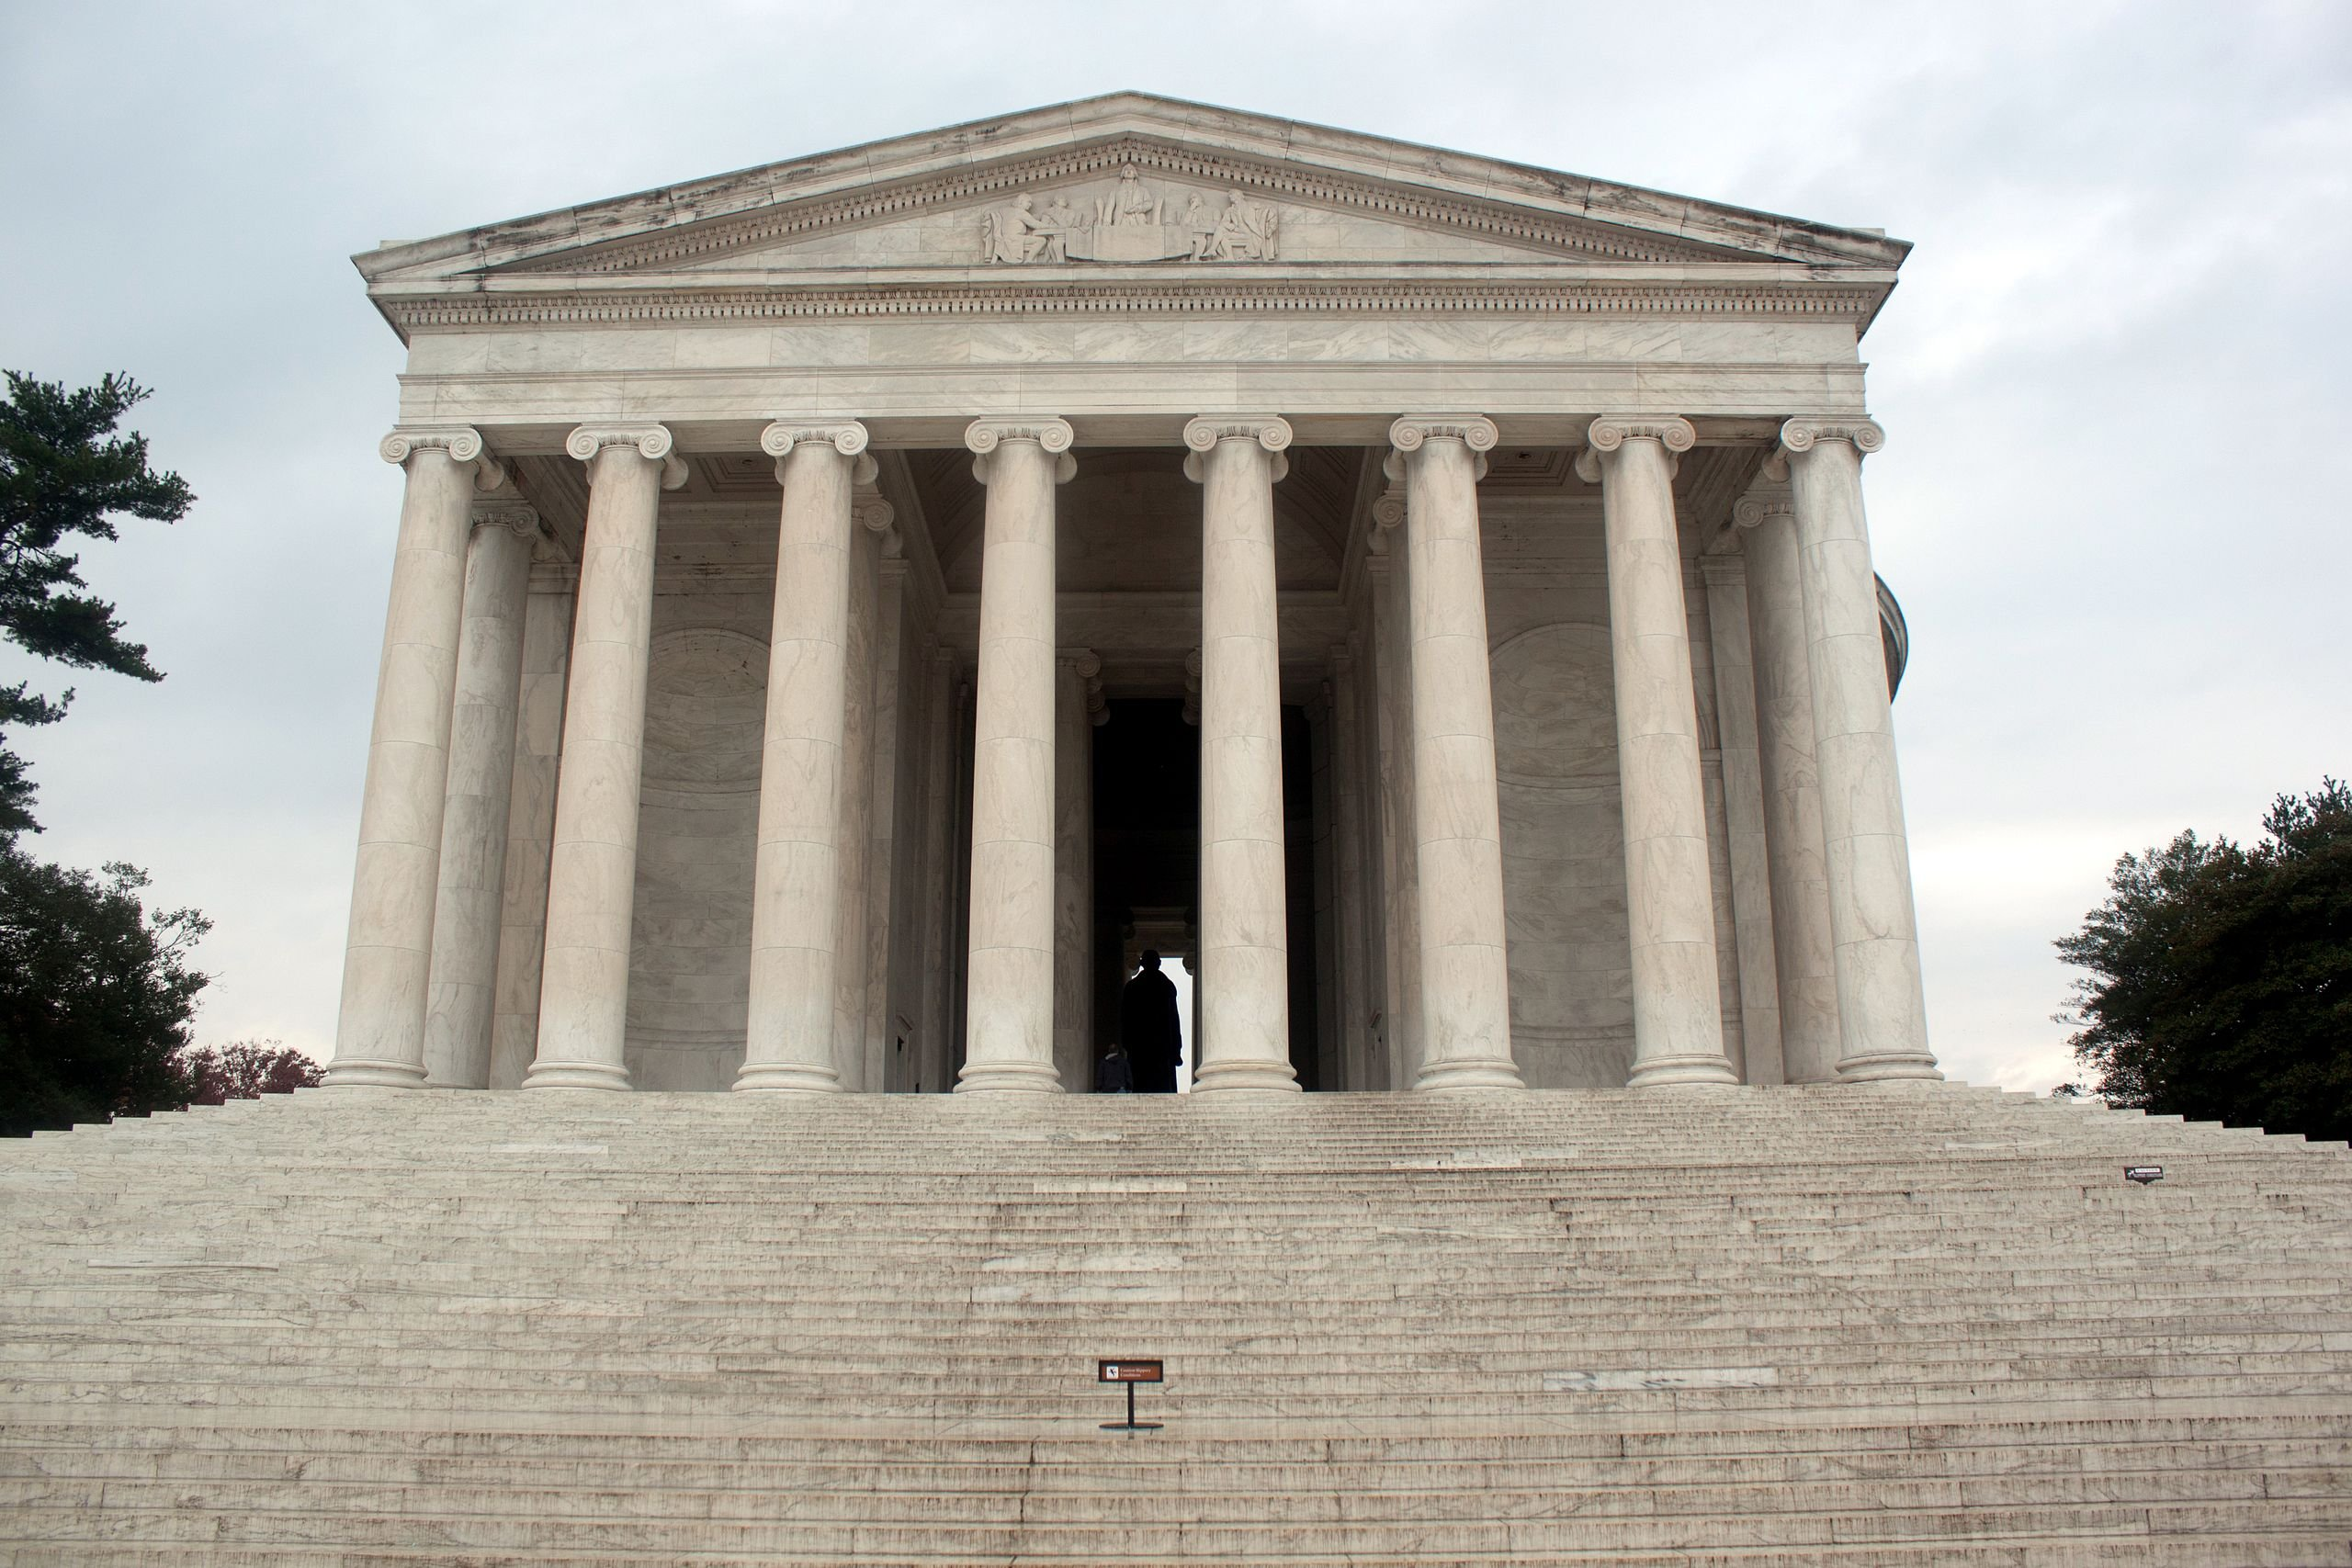 The front portico of the Jefferson Memorial, featuring sculptures of Benjamin Franklin, John Adams, Thomas Jefferson, Roger Sherman, and Robert Livingston on the triangular pediment. Wikimedia Commons.